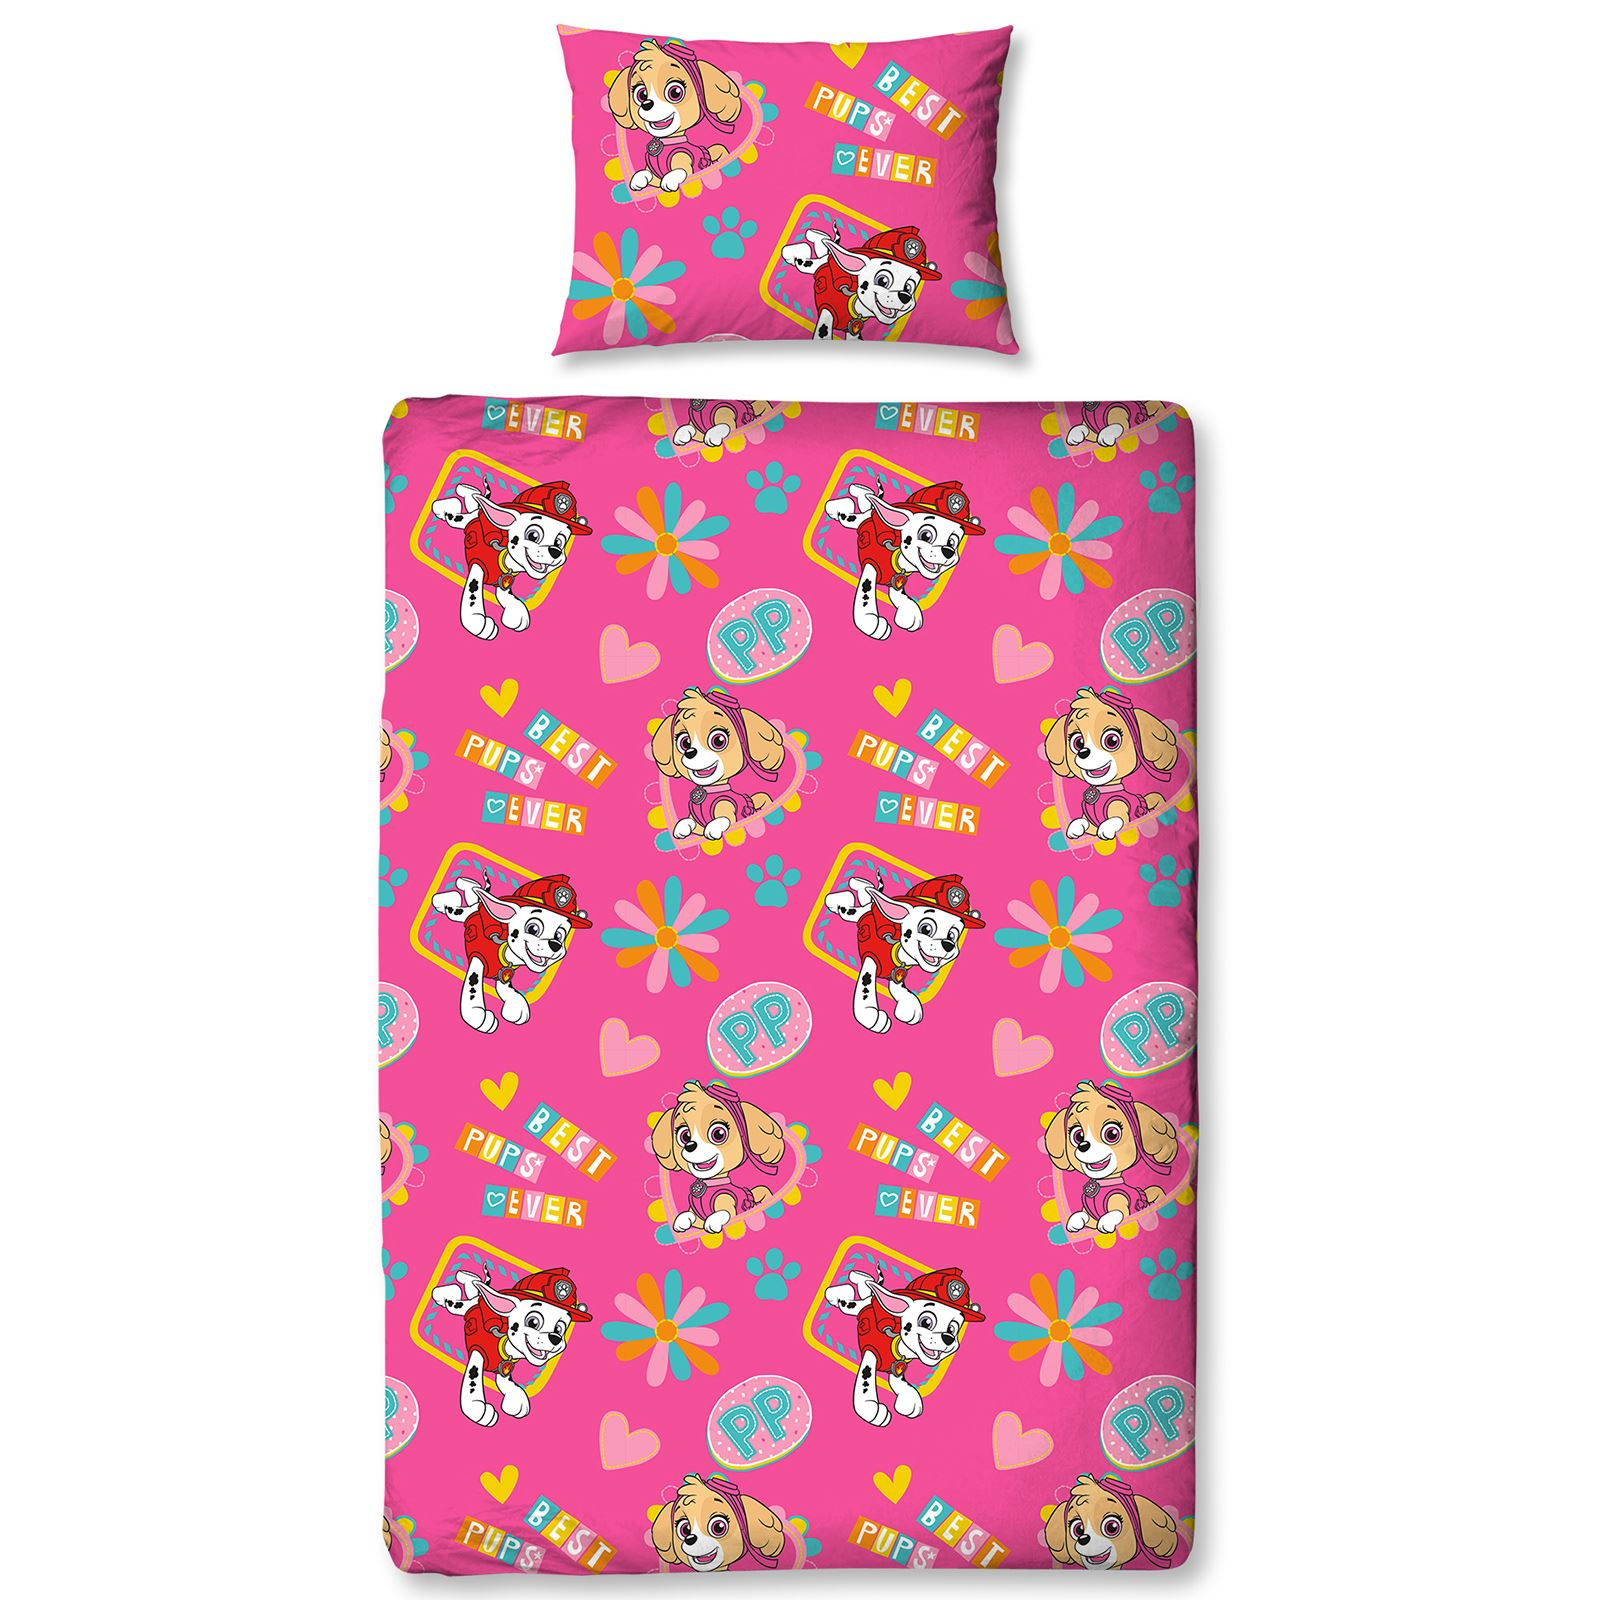 Paw Patrol Forever Single Duvet Cover Set Reversible Kids